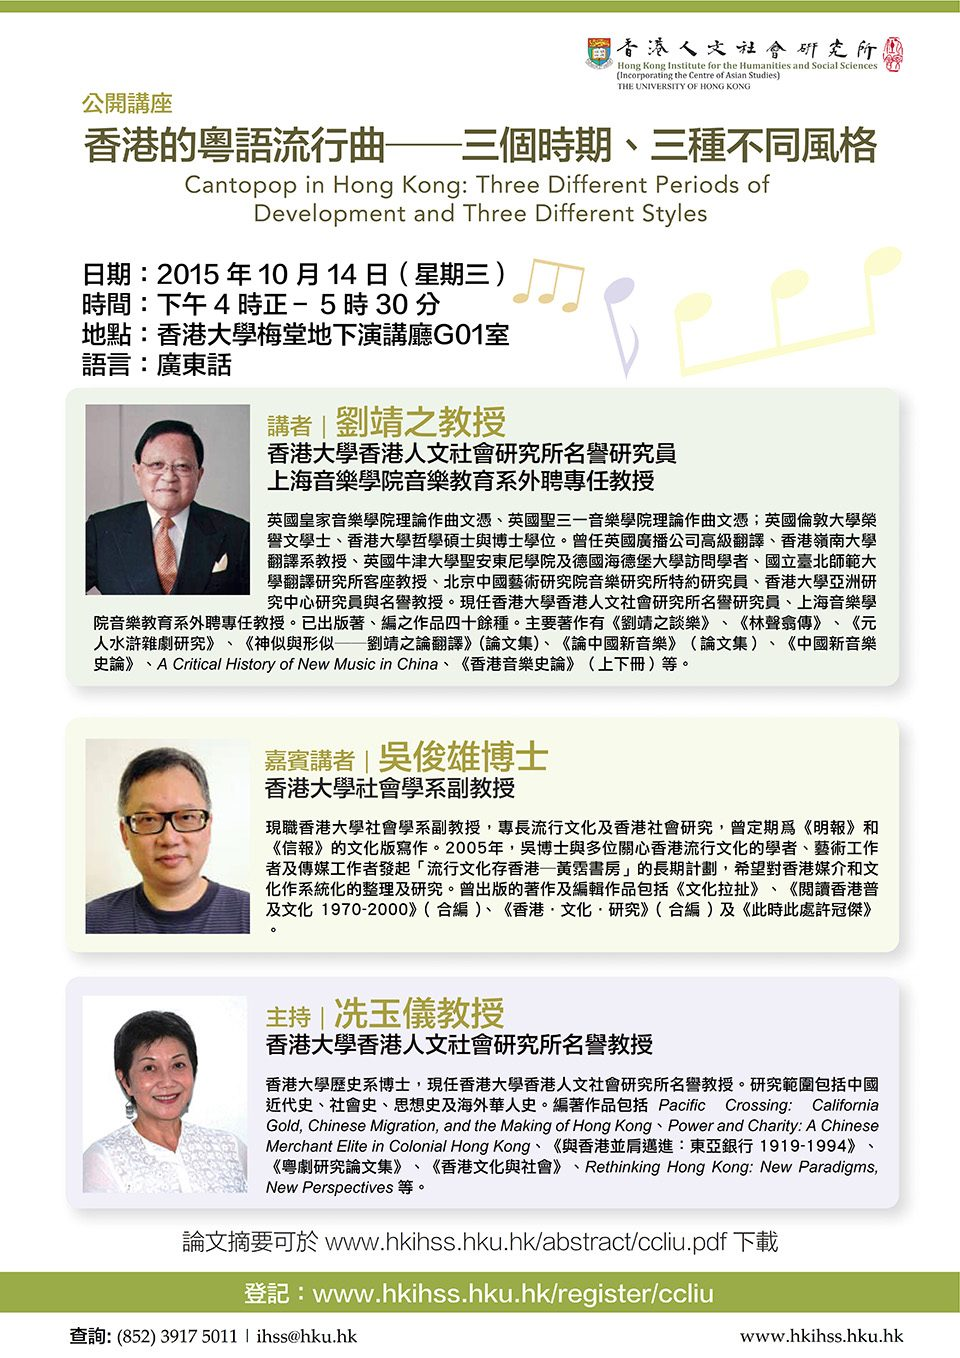 "Public Lecture on ""香港的粵語流行曲──三個時期、三種不同風格"" by Professor Ching Chih Liu and Dr. Chun Hung Ng (October 14, 2015)"